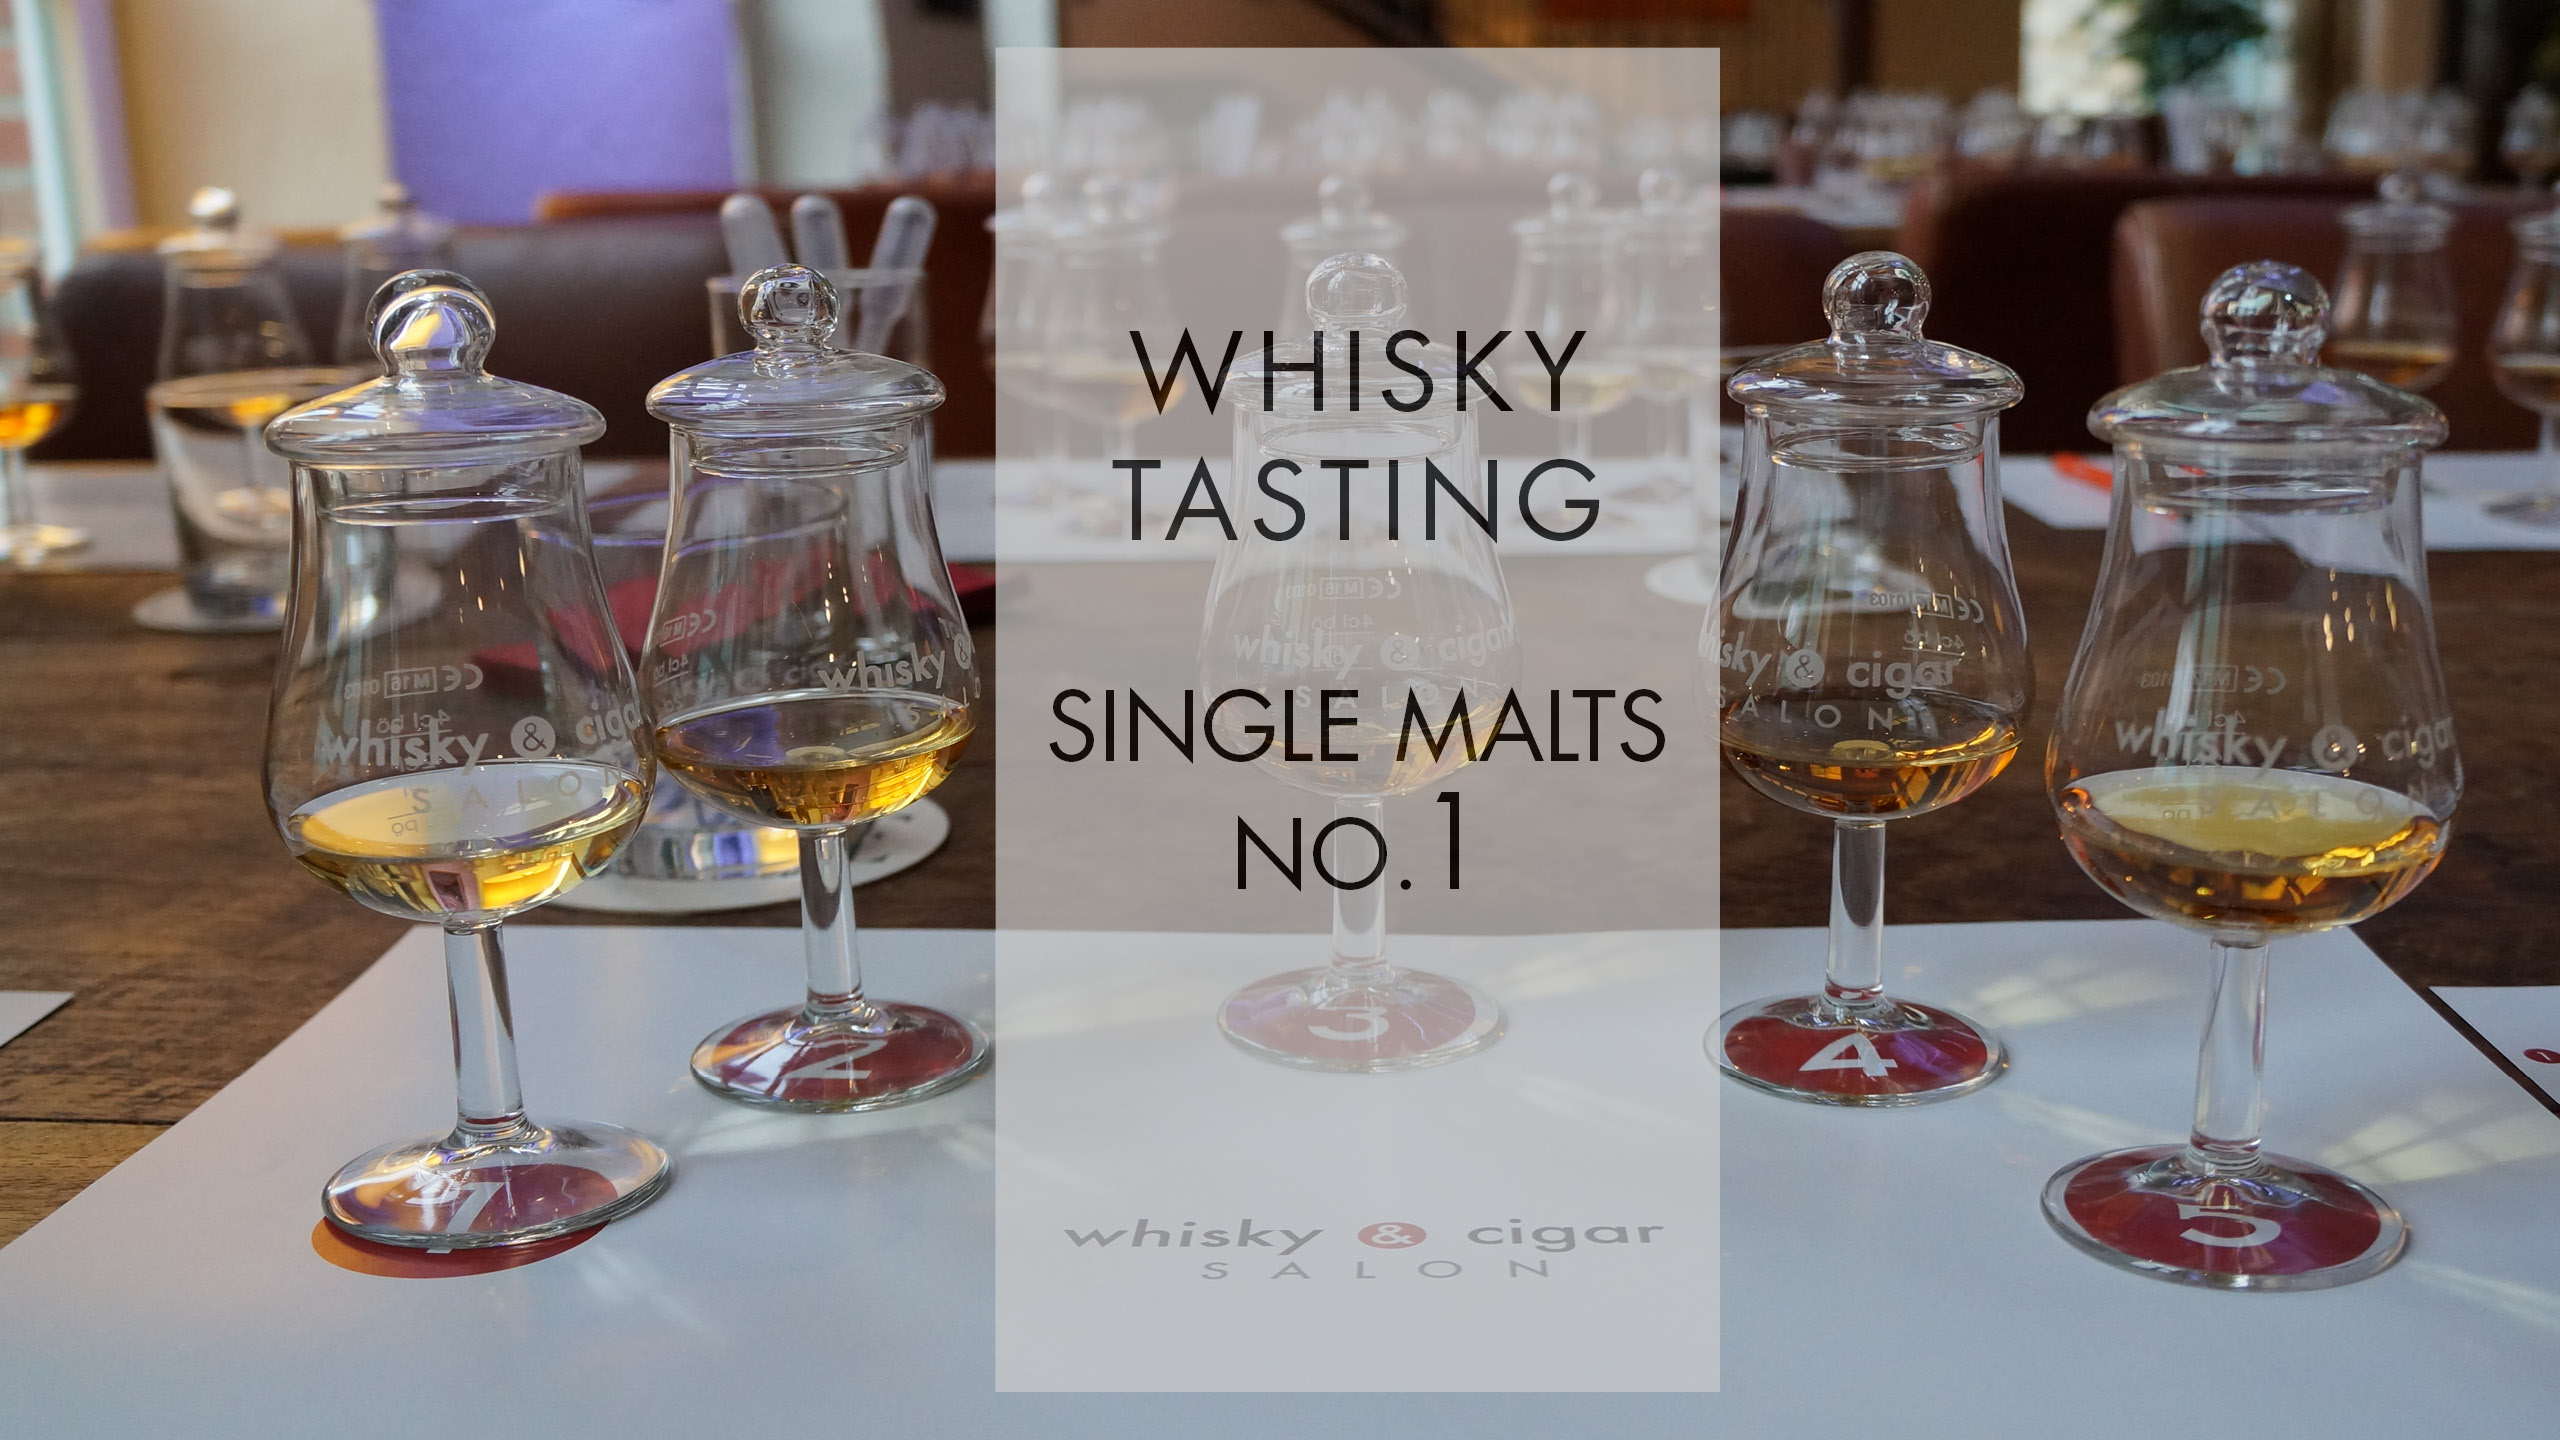 whisky & cigar salon whisky tasting single malts for beginners